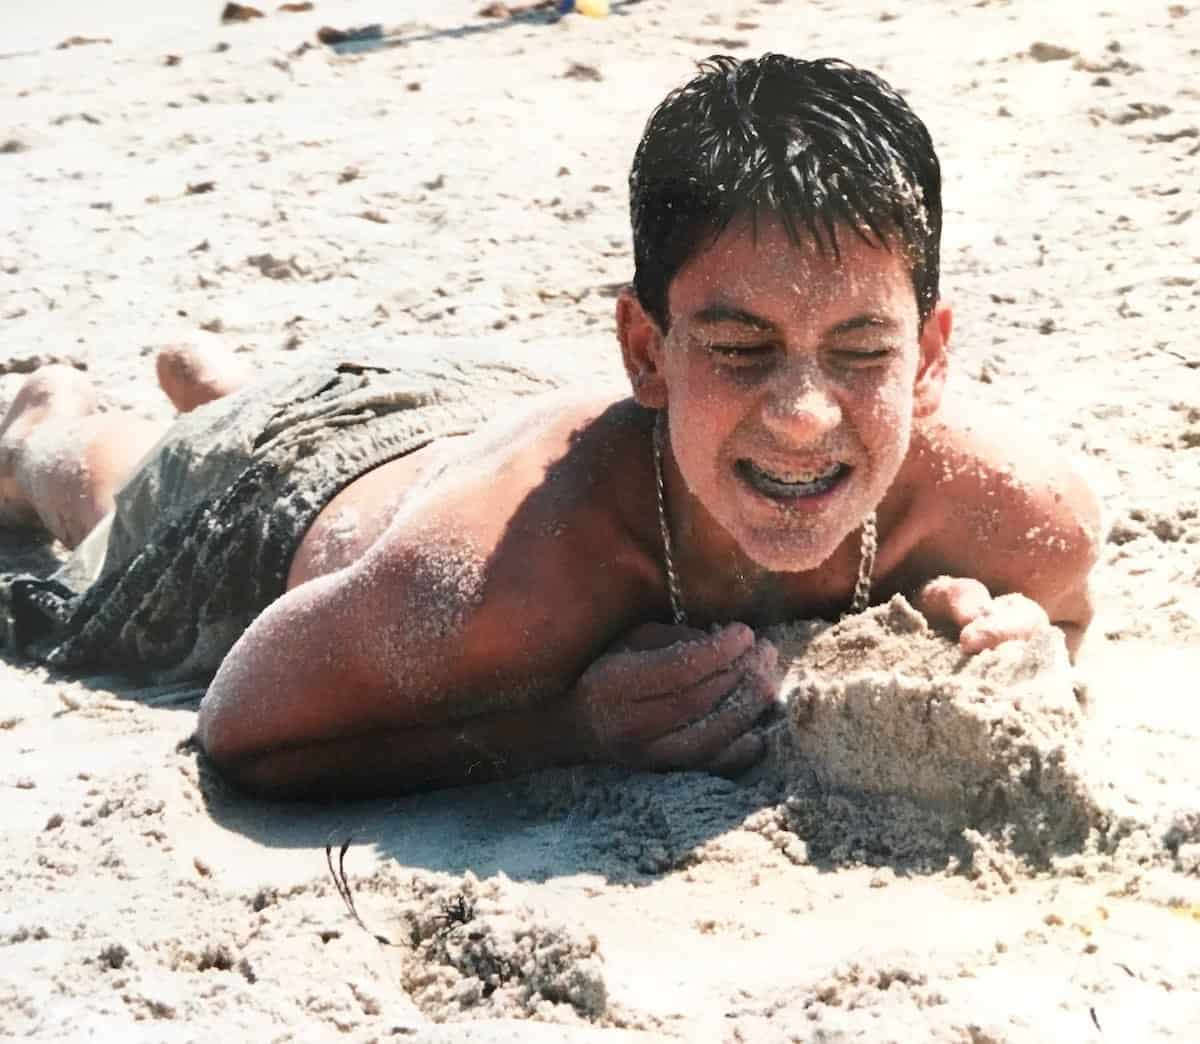 my young son at the beach covered in sand